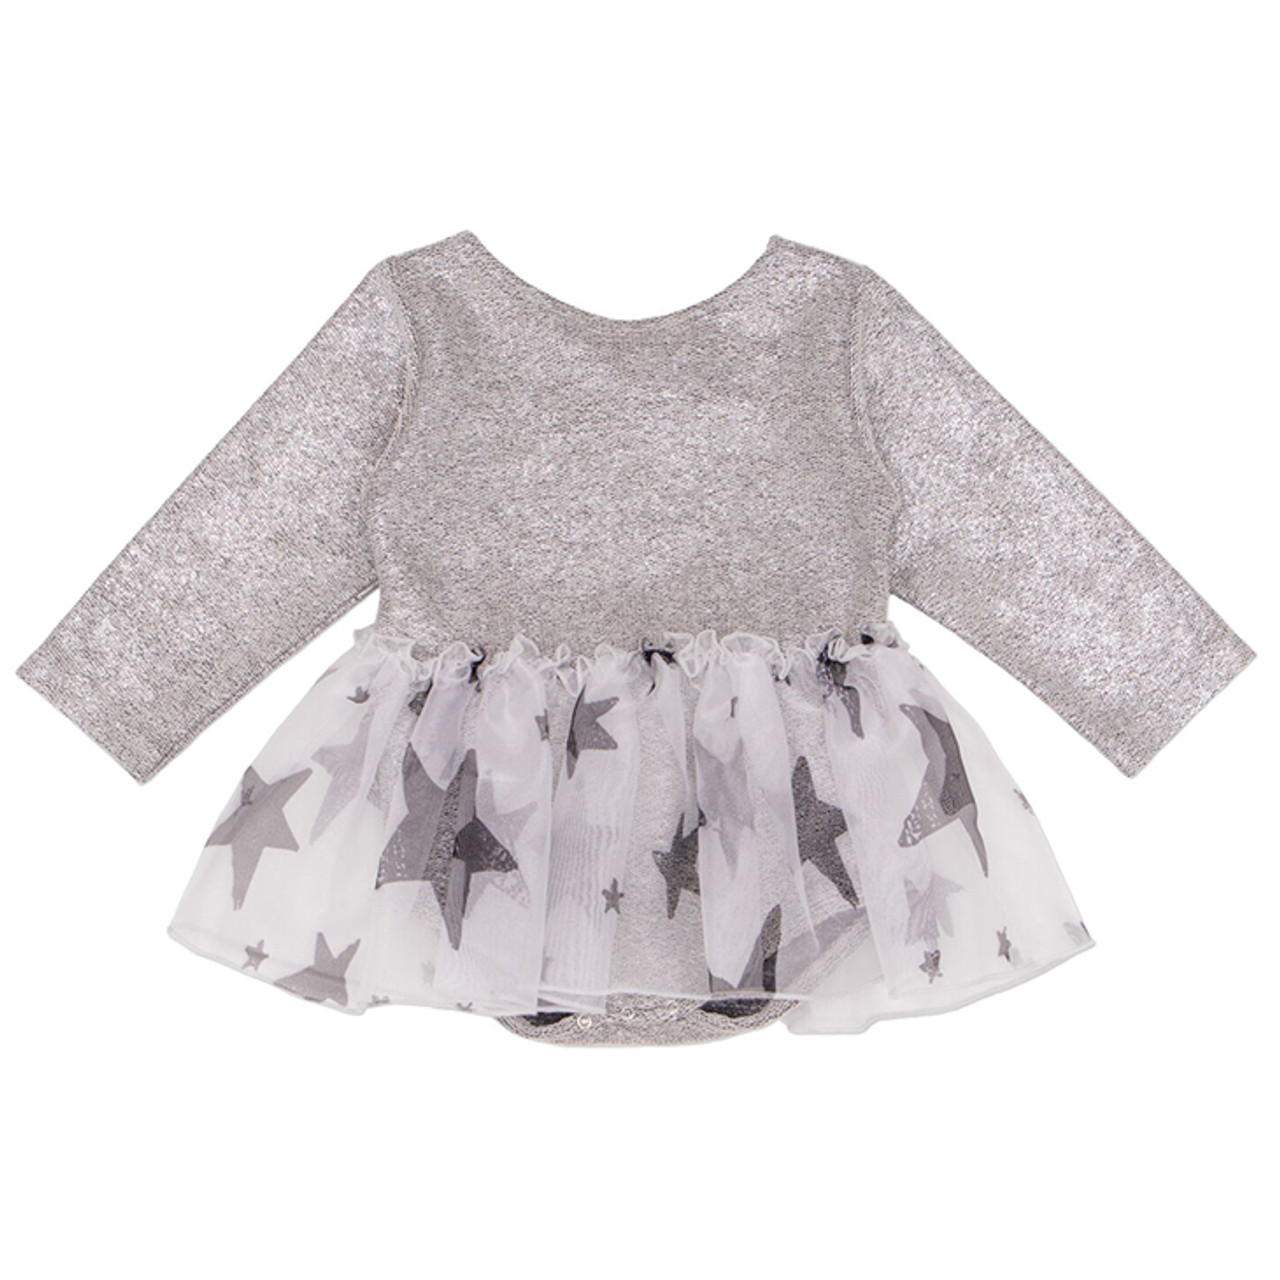 """Handmade Silver TuTu with Silver Top Dress FOR 11 1//2/"""" Doll 2 Pieces"""